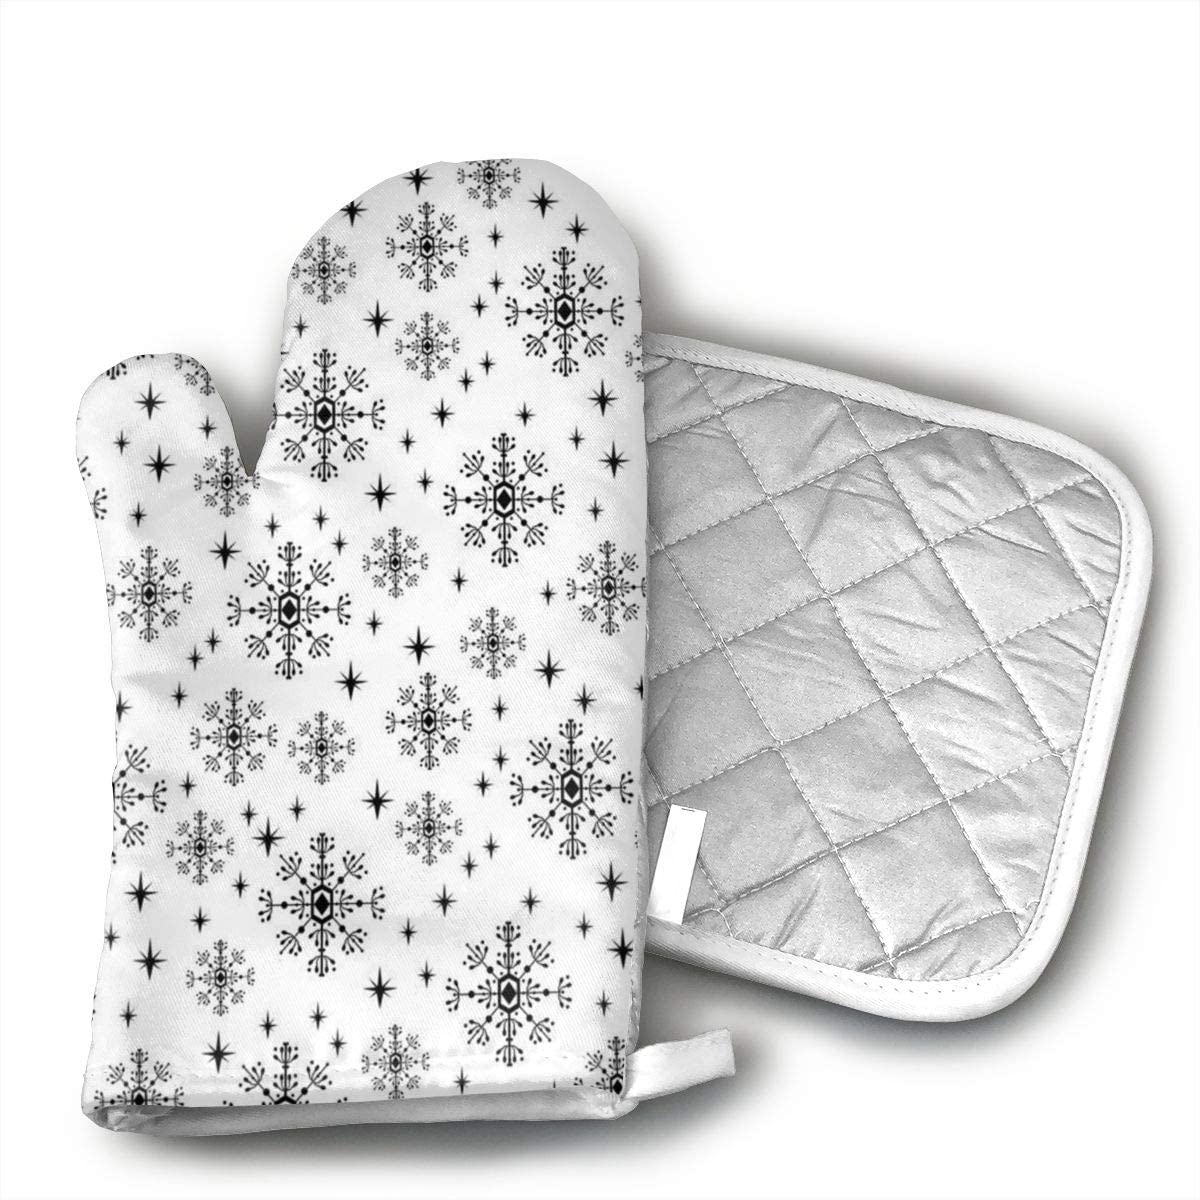 Snowflakes Christmas Holiday Winter Oven Mitts, Non-Slip Oven Mitts, Extra Long Kitchen Mitts, Heat Resistant to Degrees Kitchen Oven Gloves